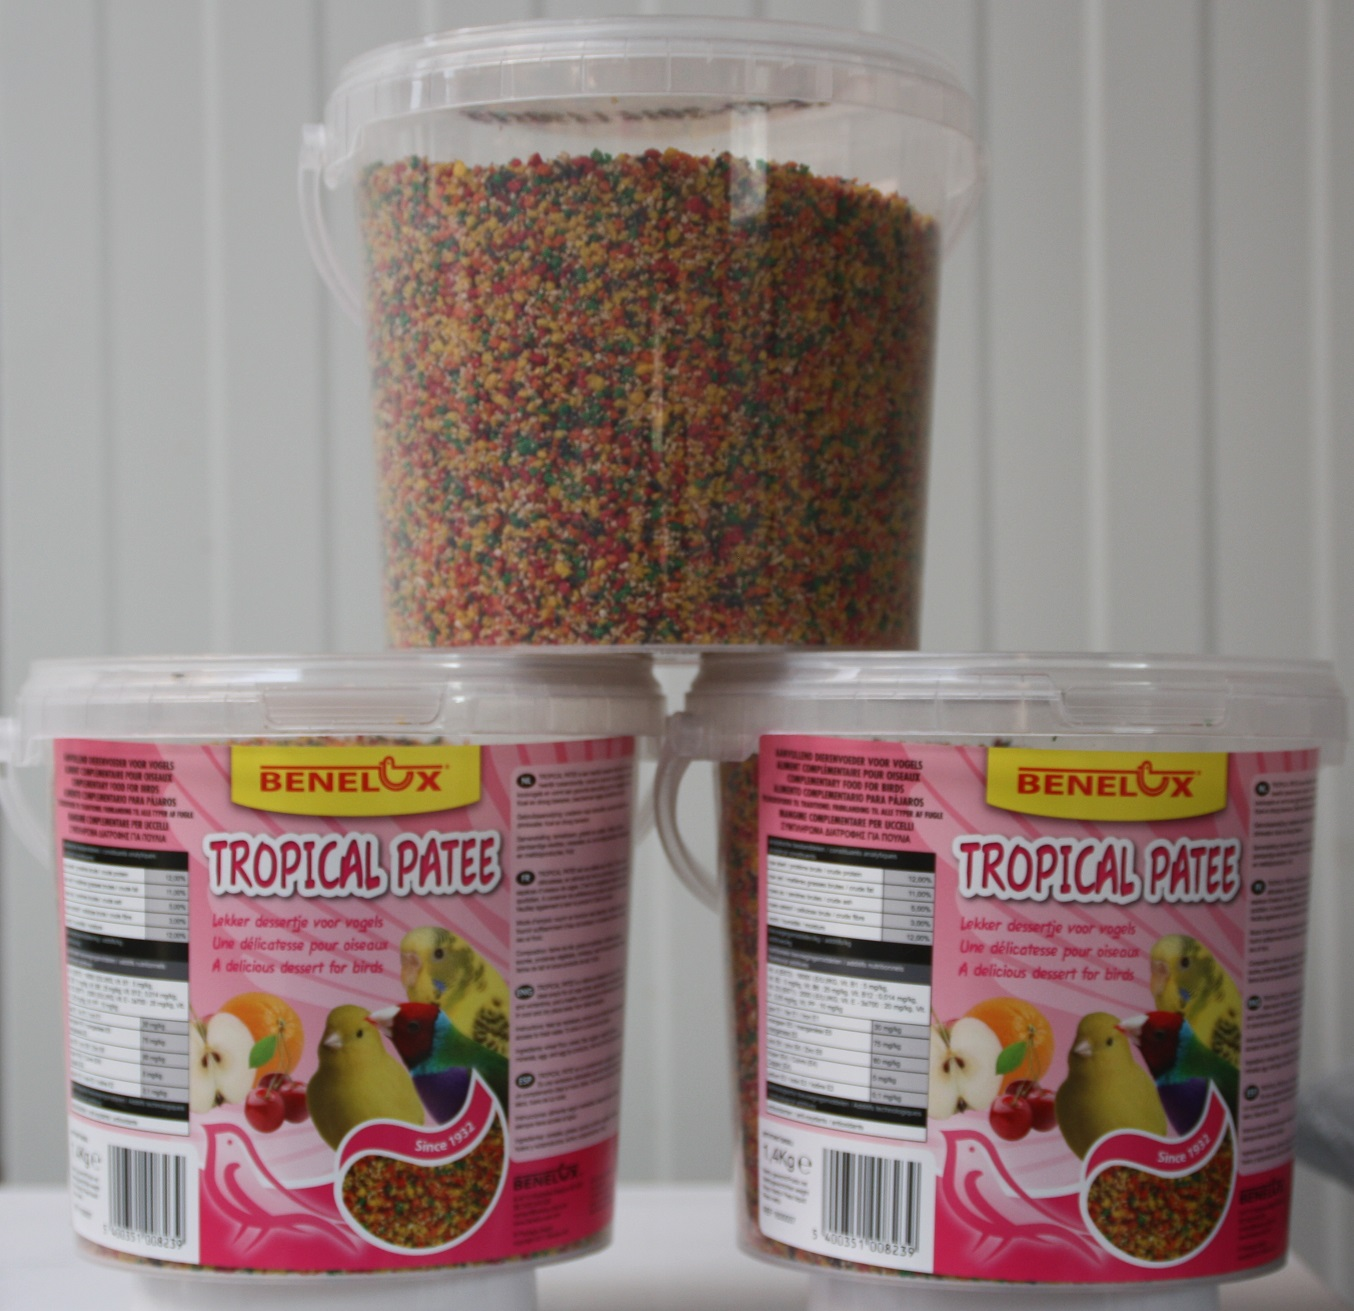 Patée mix fruits en seau de 1.4kg